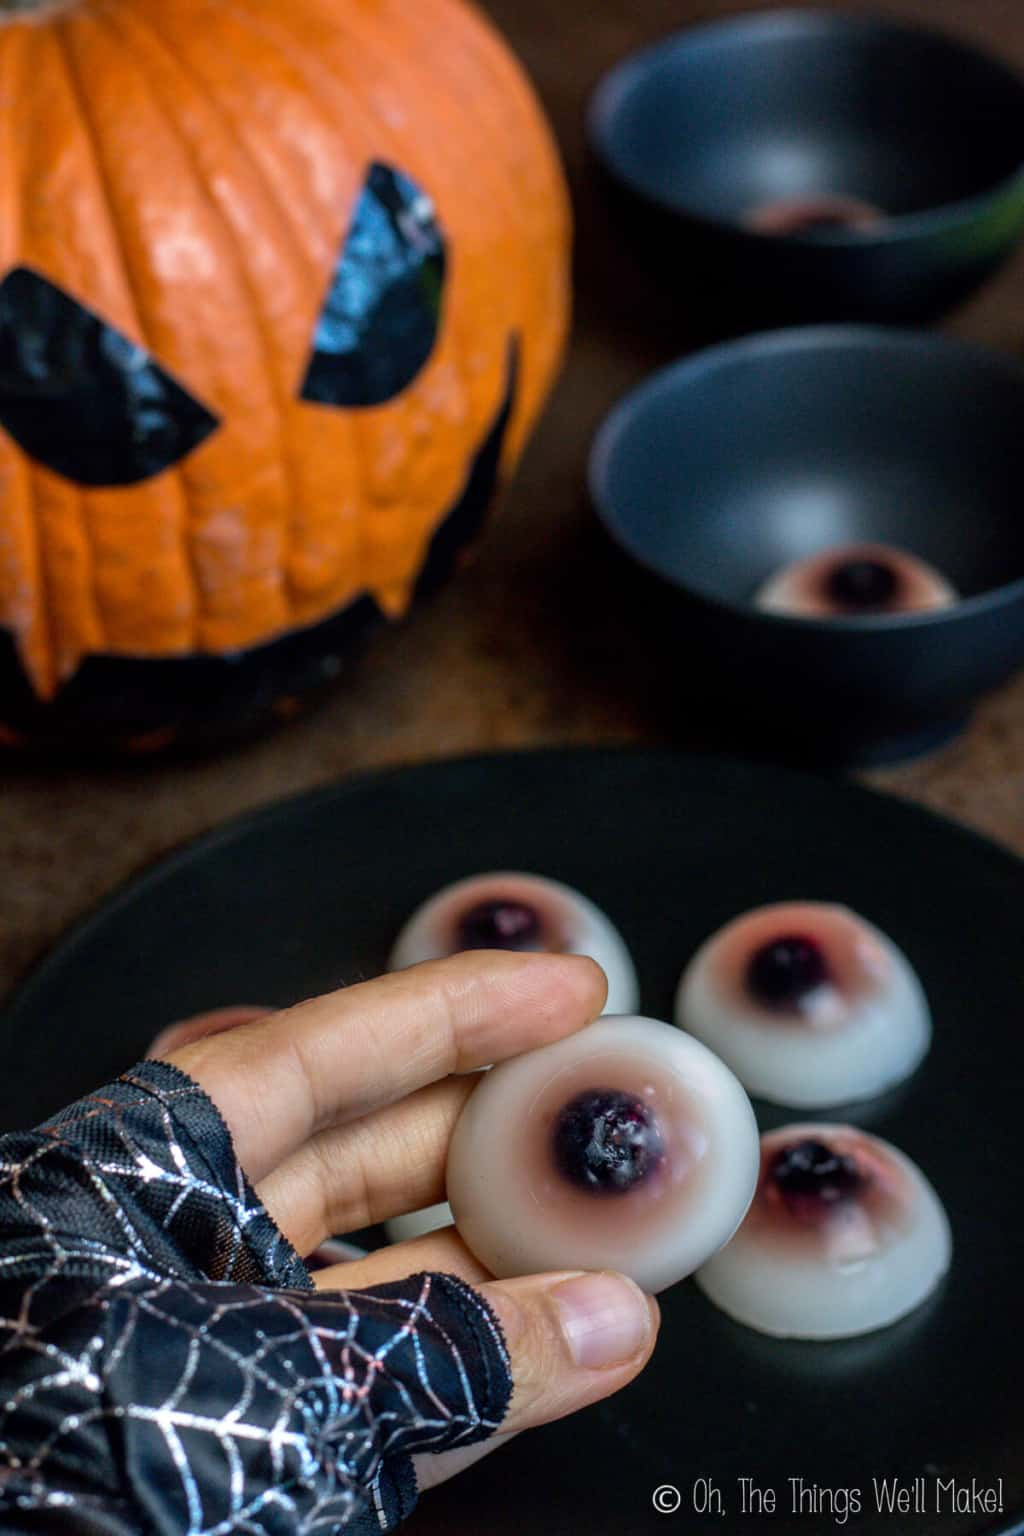 A hand holding a gummy eyeball from a plate full of gummy eyeballs and a jack-o-lantern in the background.